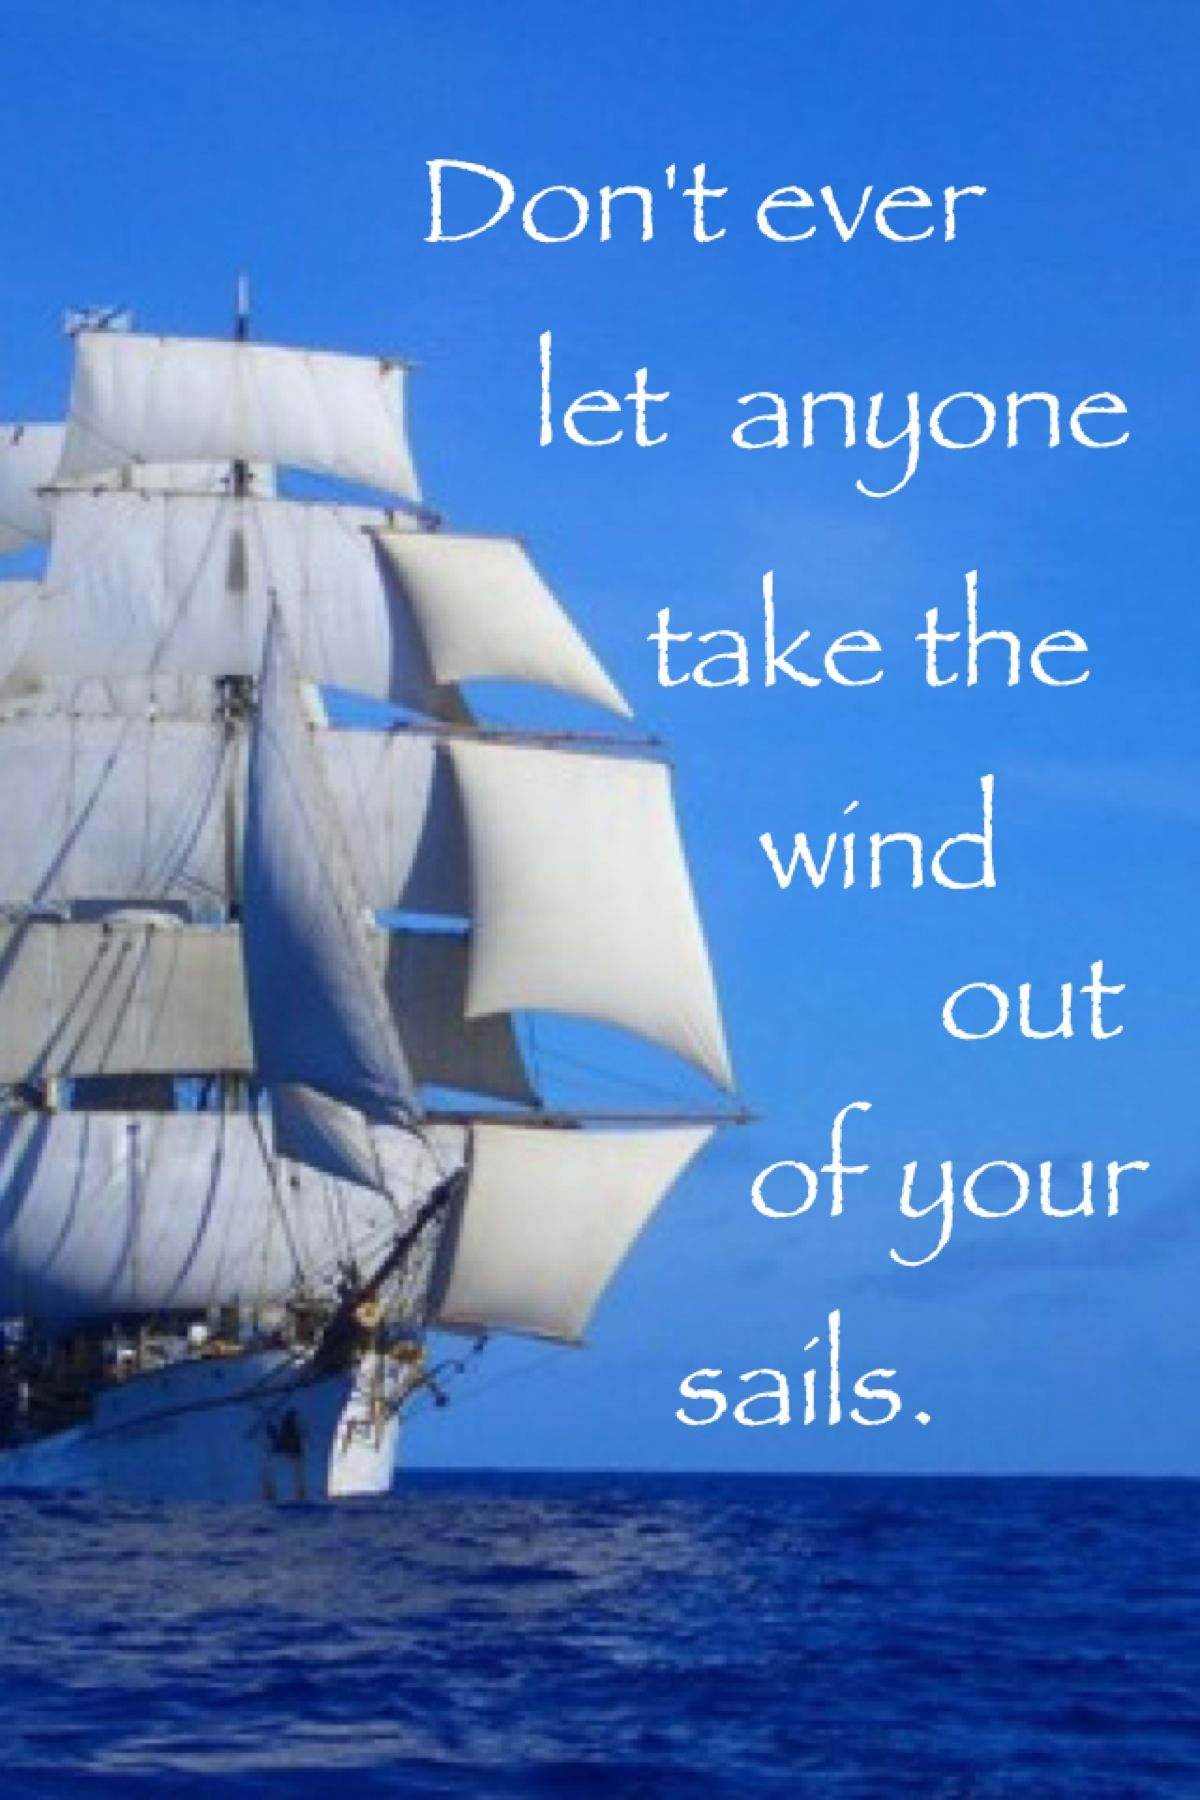 Quotes About Sailing And Life Don't Ever Let Anyone Take The Wind Out Of Your Sails Words